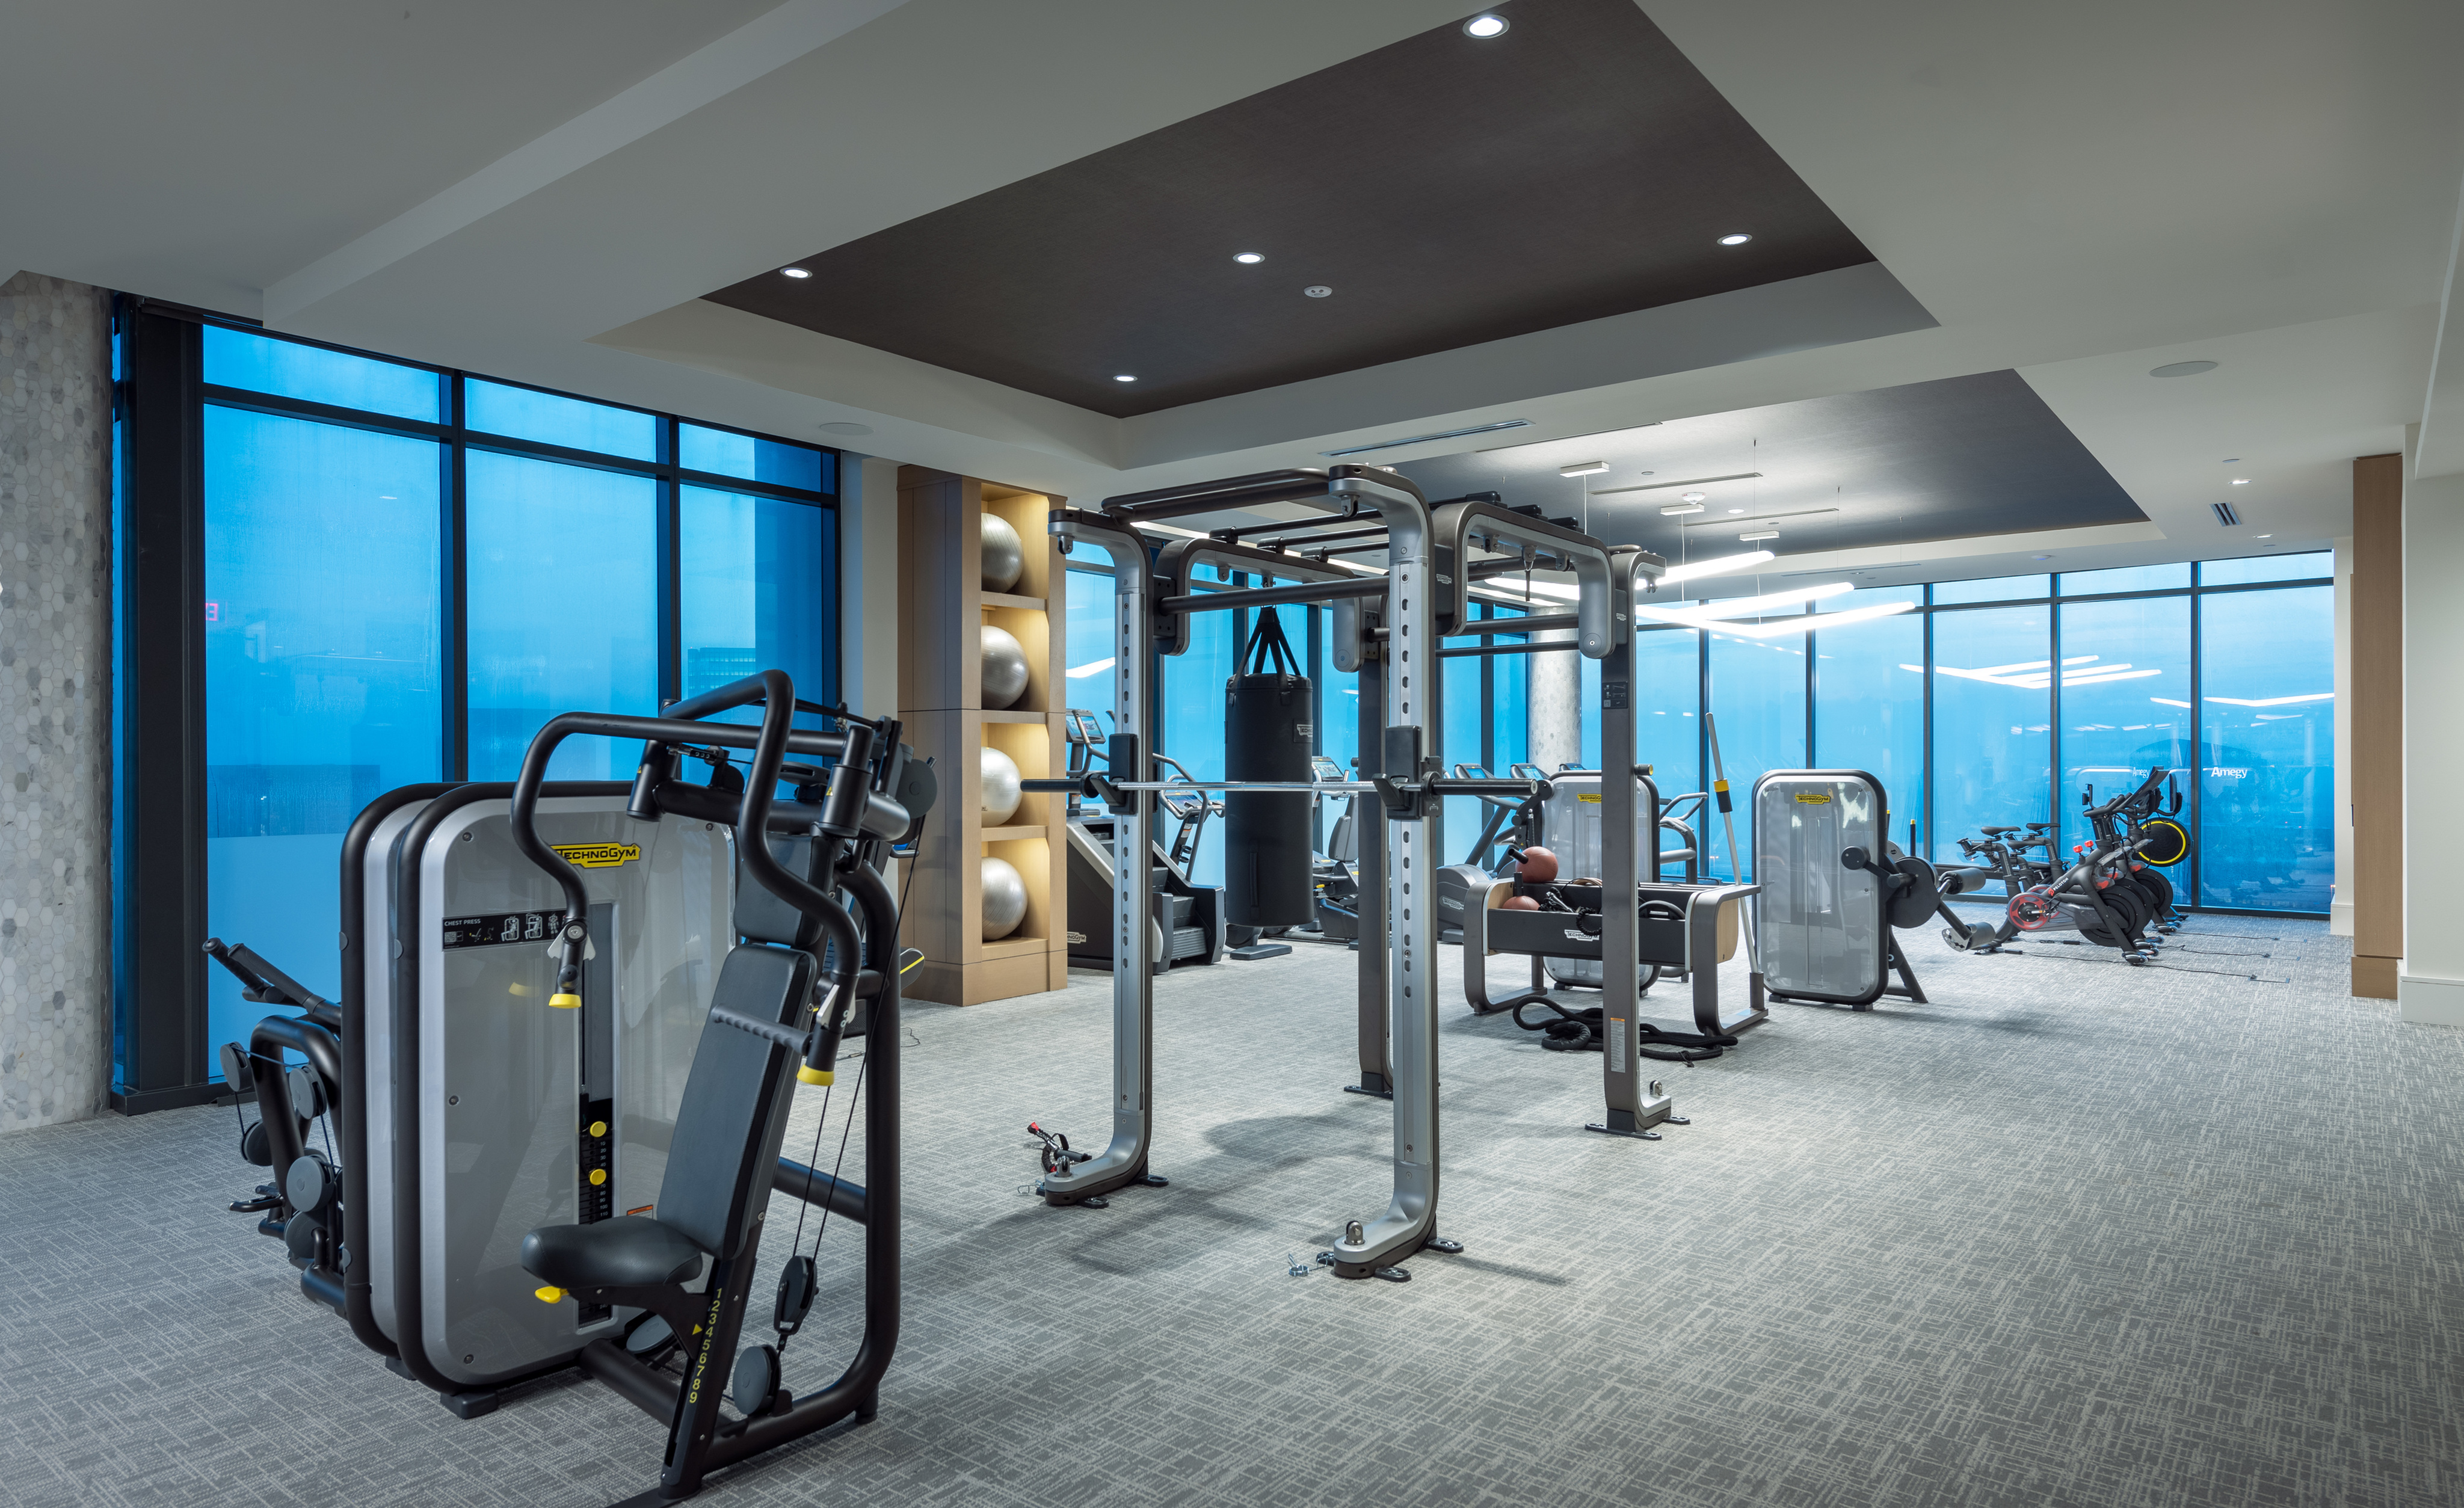 2400 Sq Ft Technogym featuring TRX, SkillMill Treadmills, Row Machines, Barre Bar, Punching Bag & Stretching Space at Hanover BLVD Place